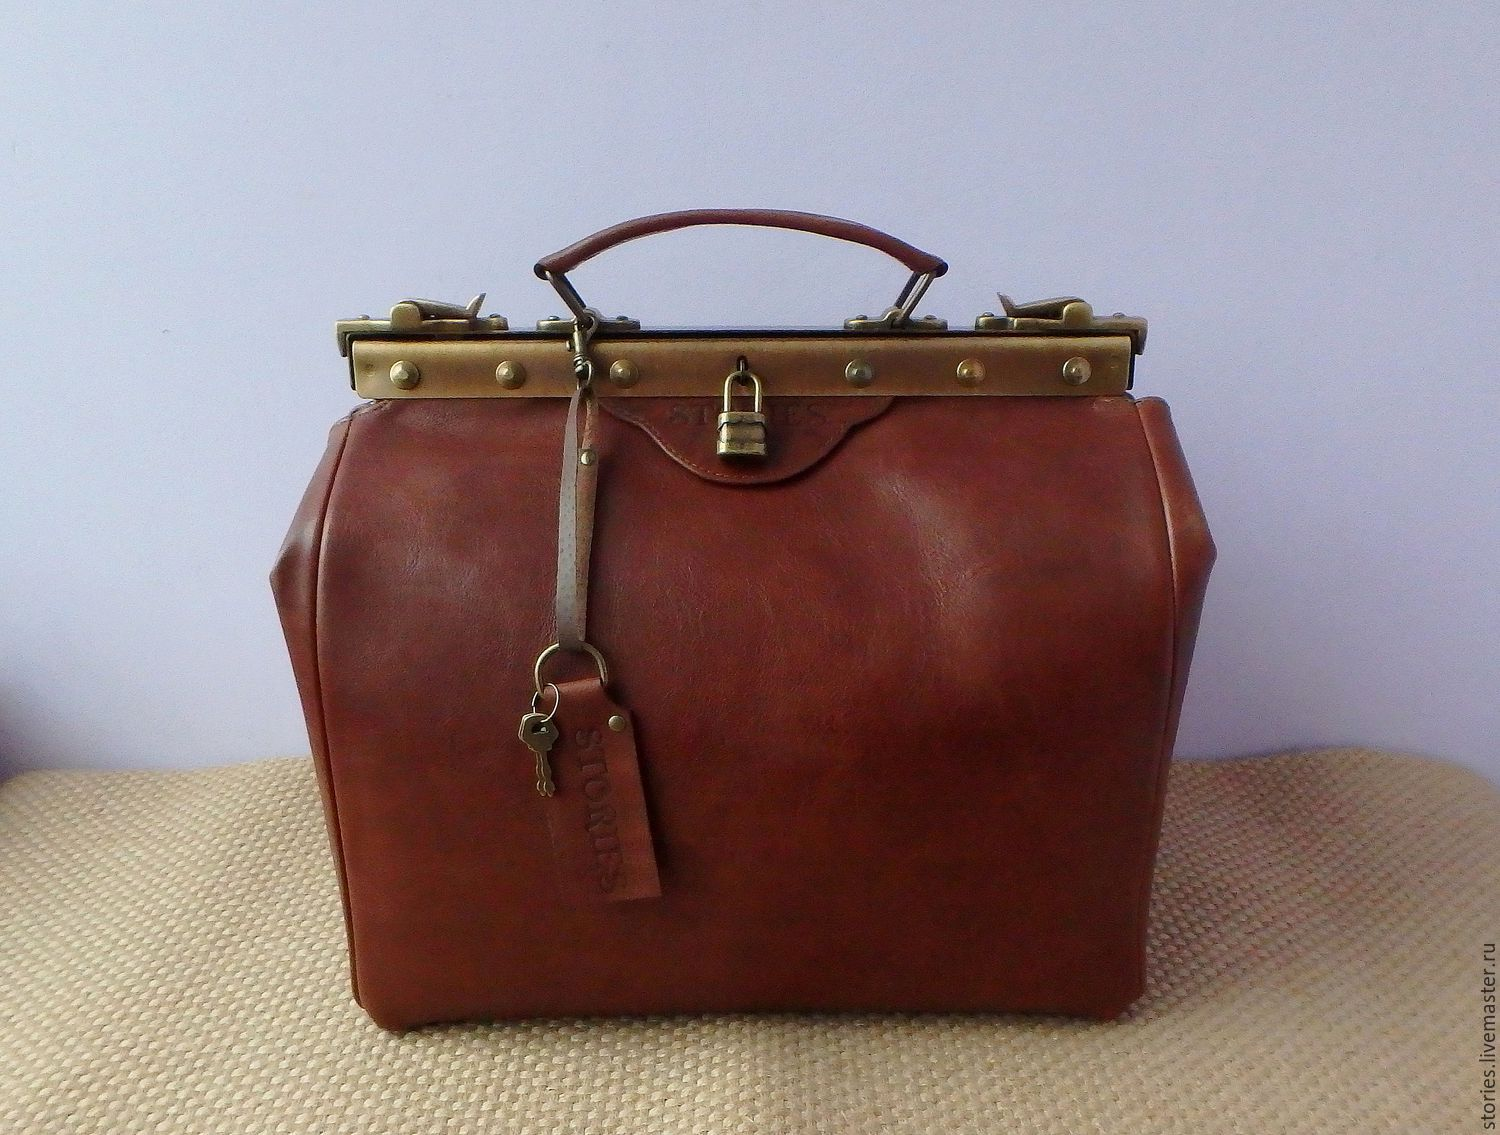 bag leather doctoral, Valise, Dubna,  Фото №1